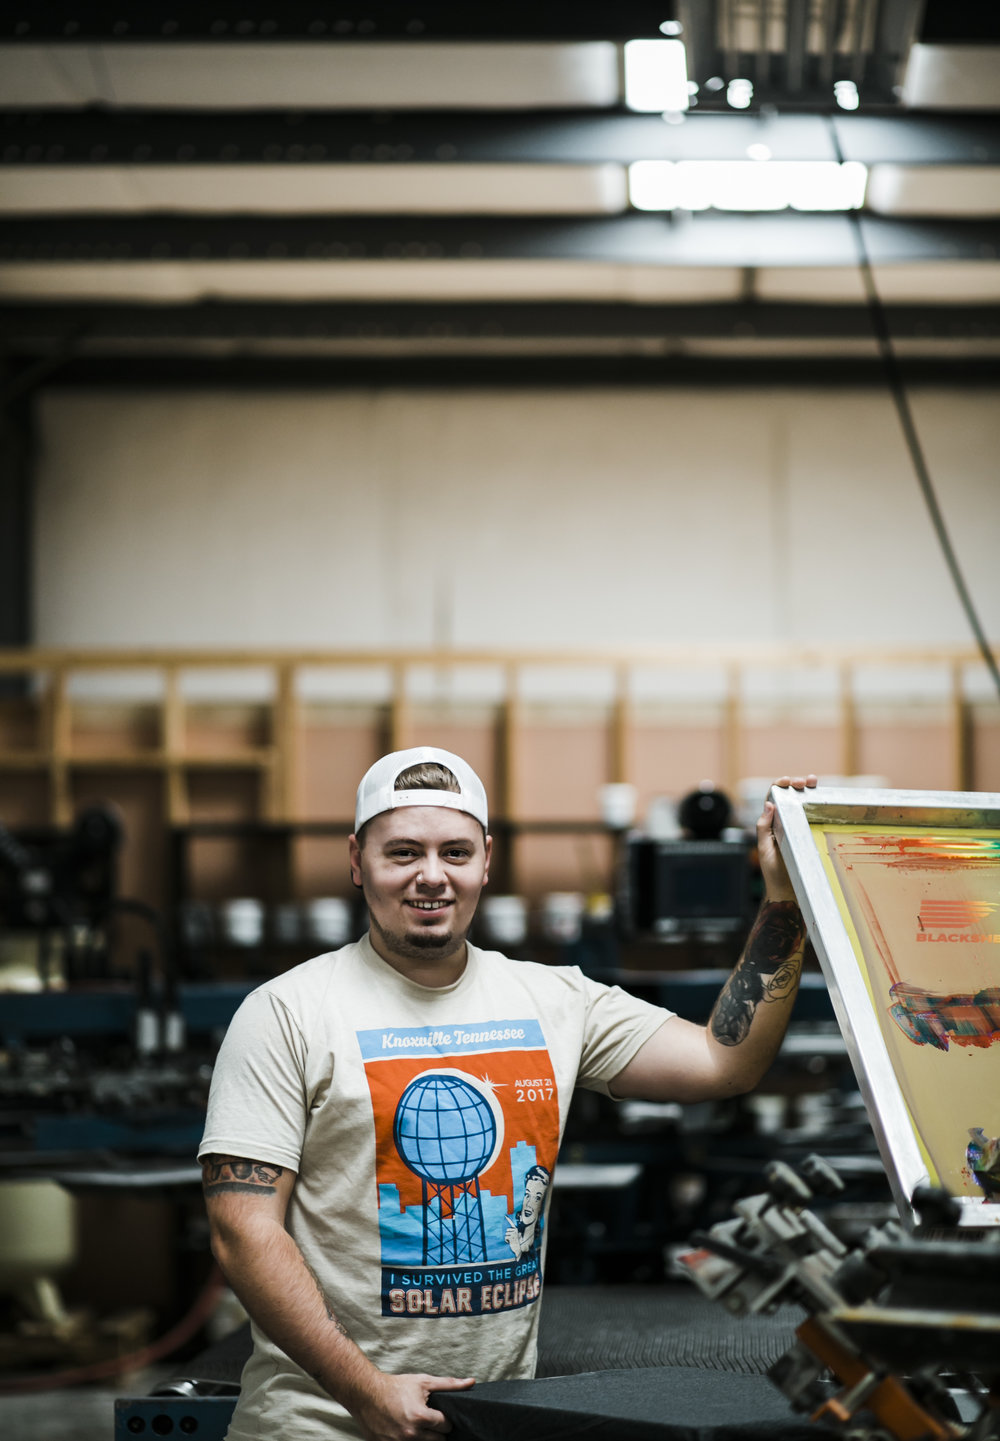 Jesse Barlow -  Established in 2016, Blacksheep Printing had one goal – to make tee shirts better. Our team came together with years of combined experience in the industry with a common vision to do things differently. Our focus on our craft, and dedication to our community has been the driving force behind our company.